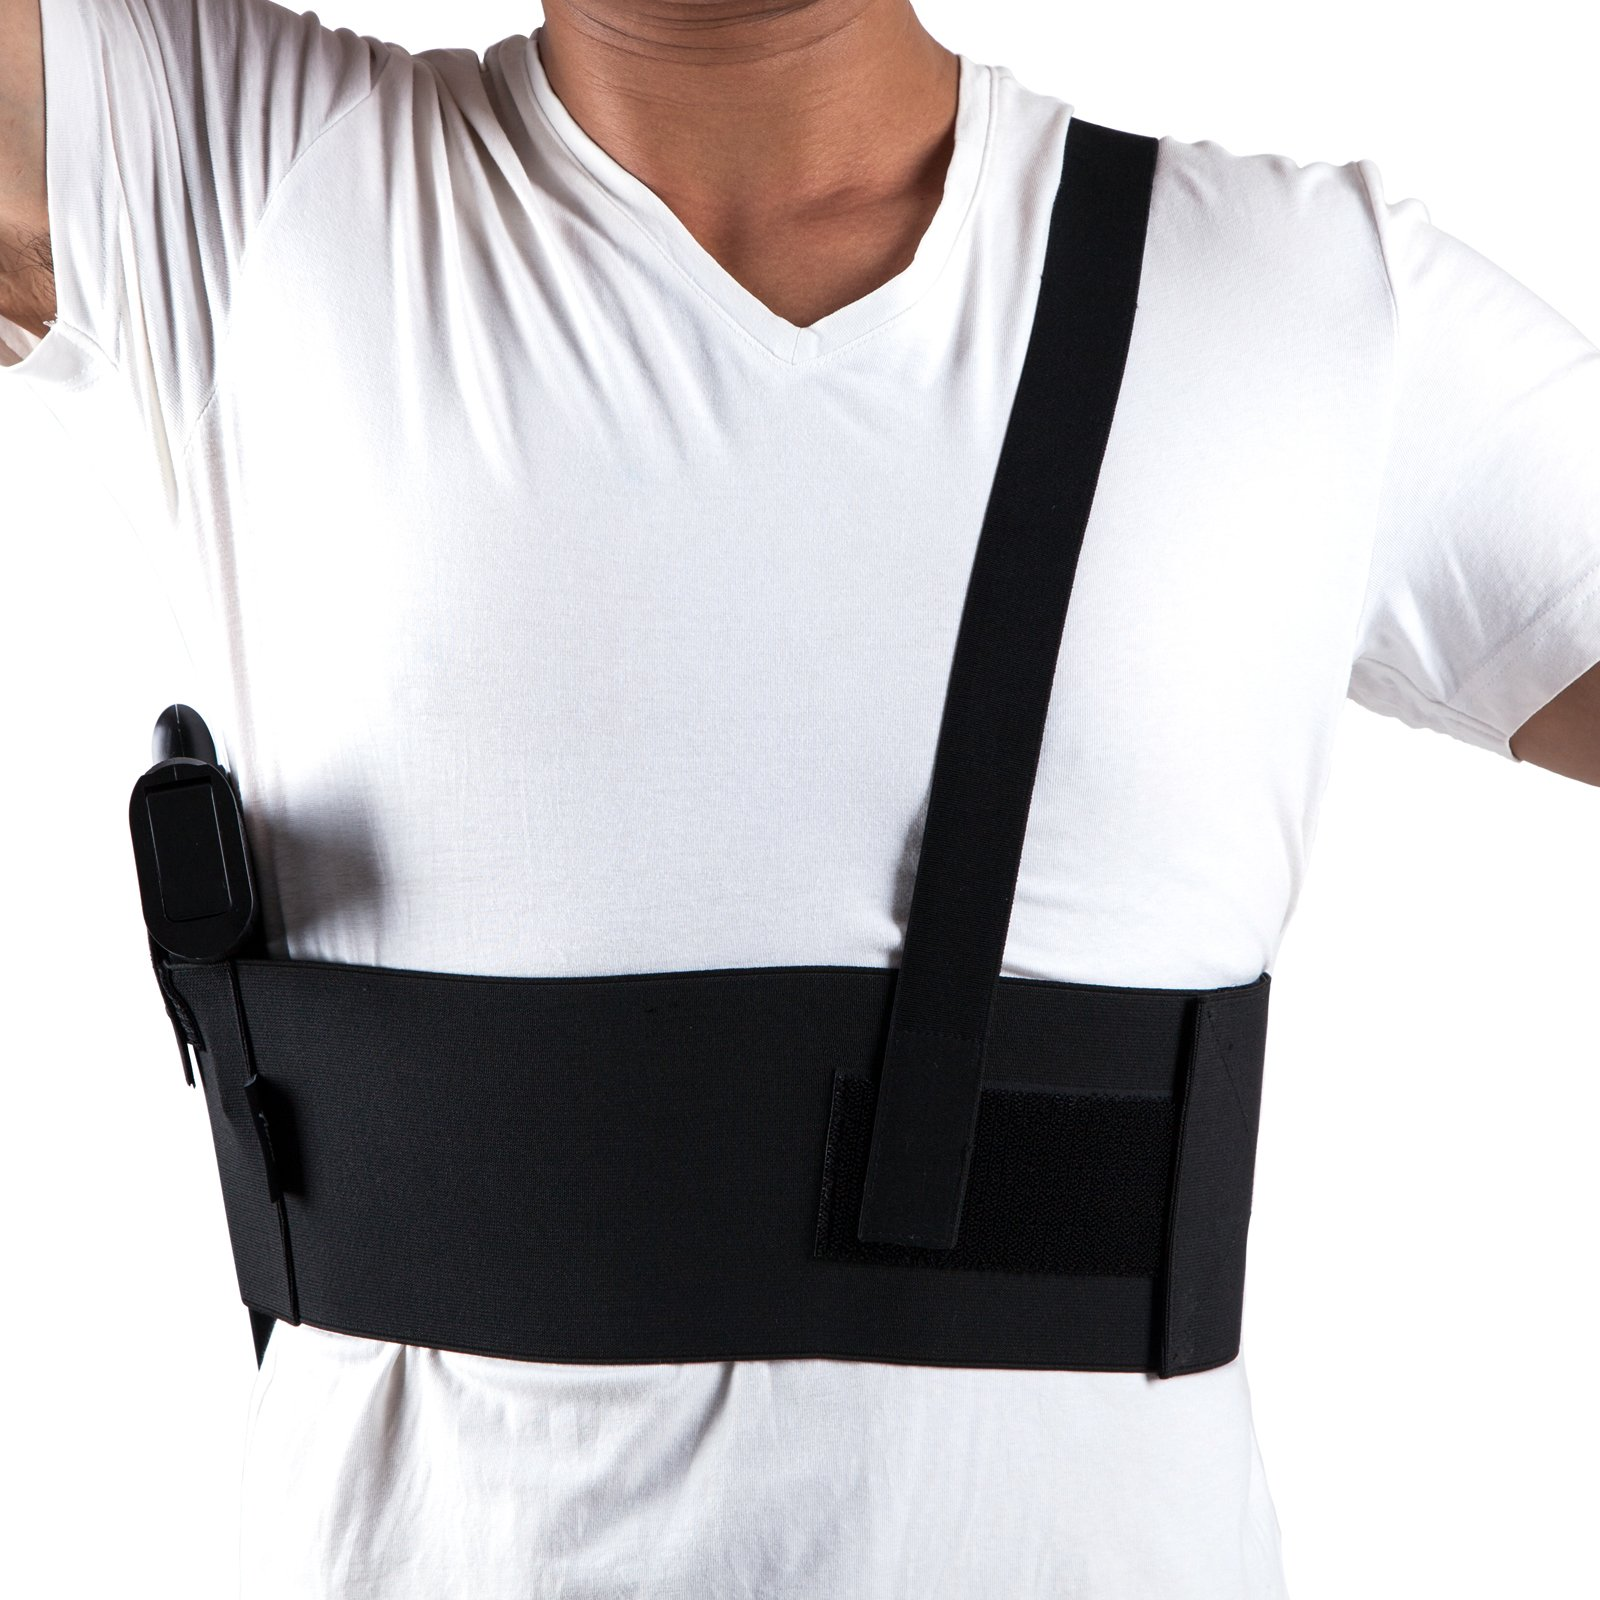 Airica Versatile Belly Ventilation Band Holster for Concealed Carry